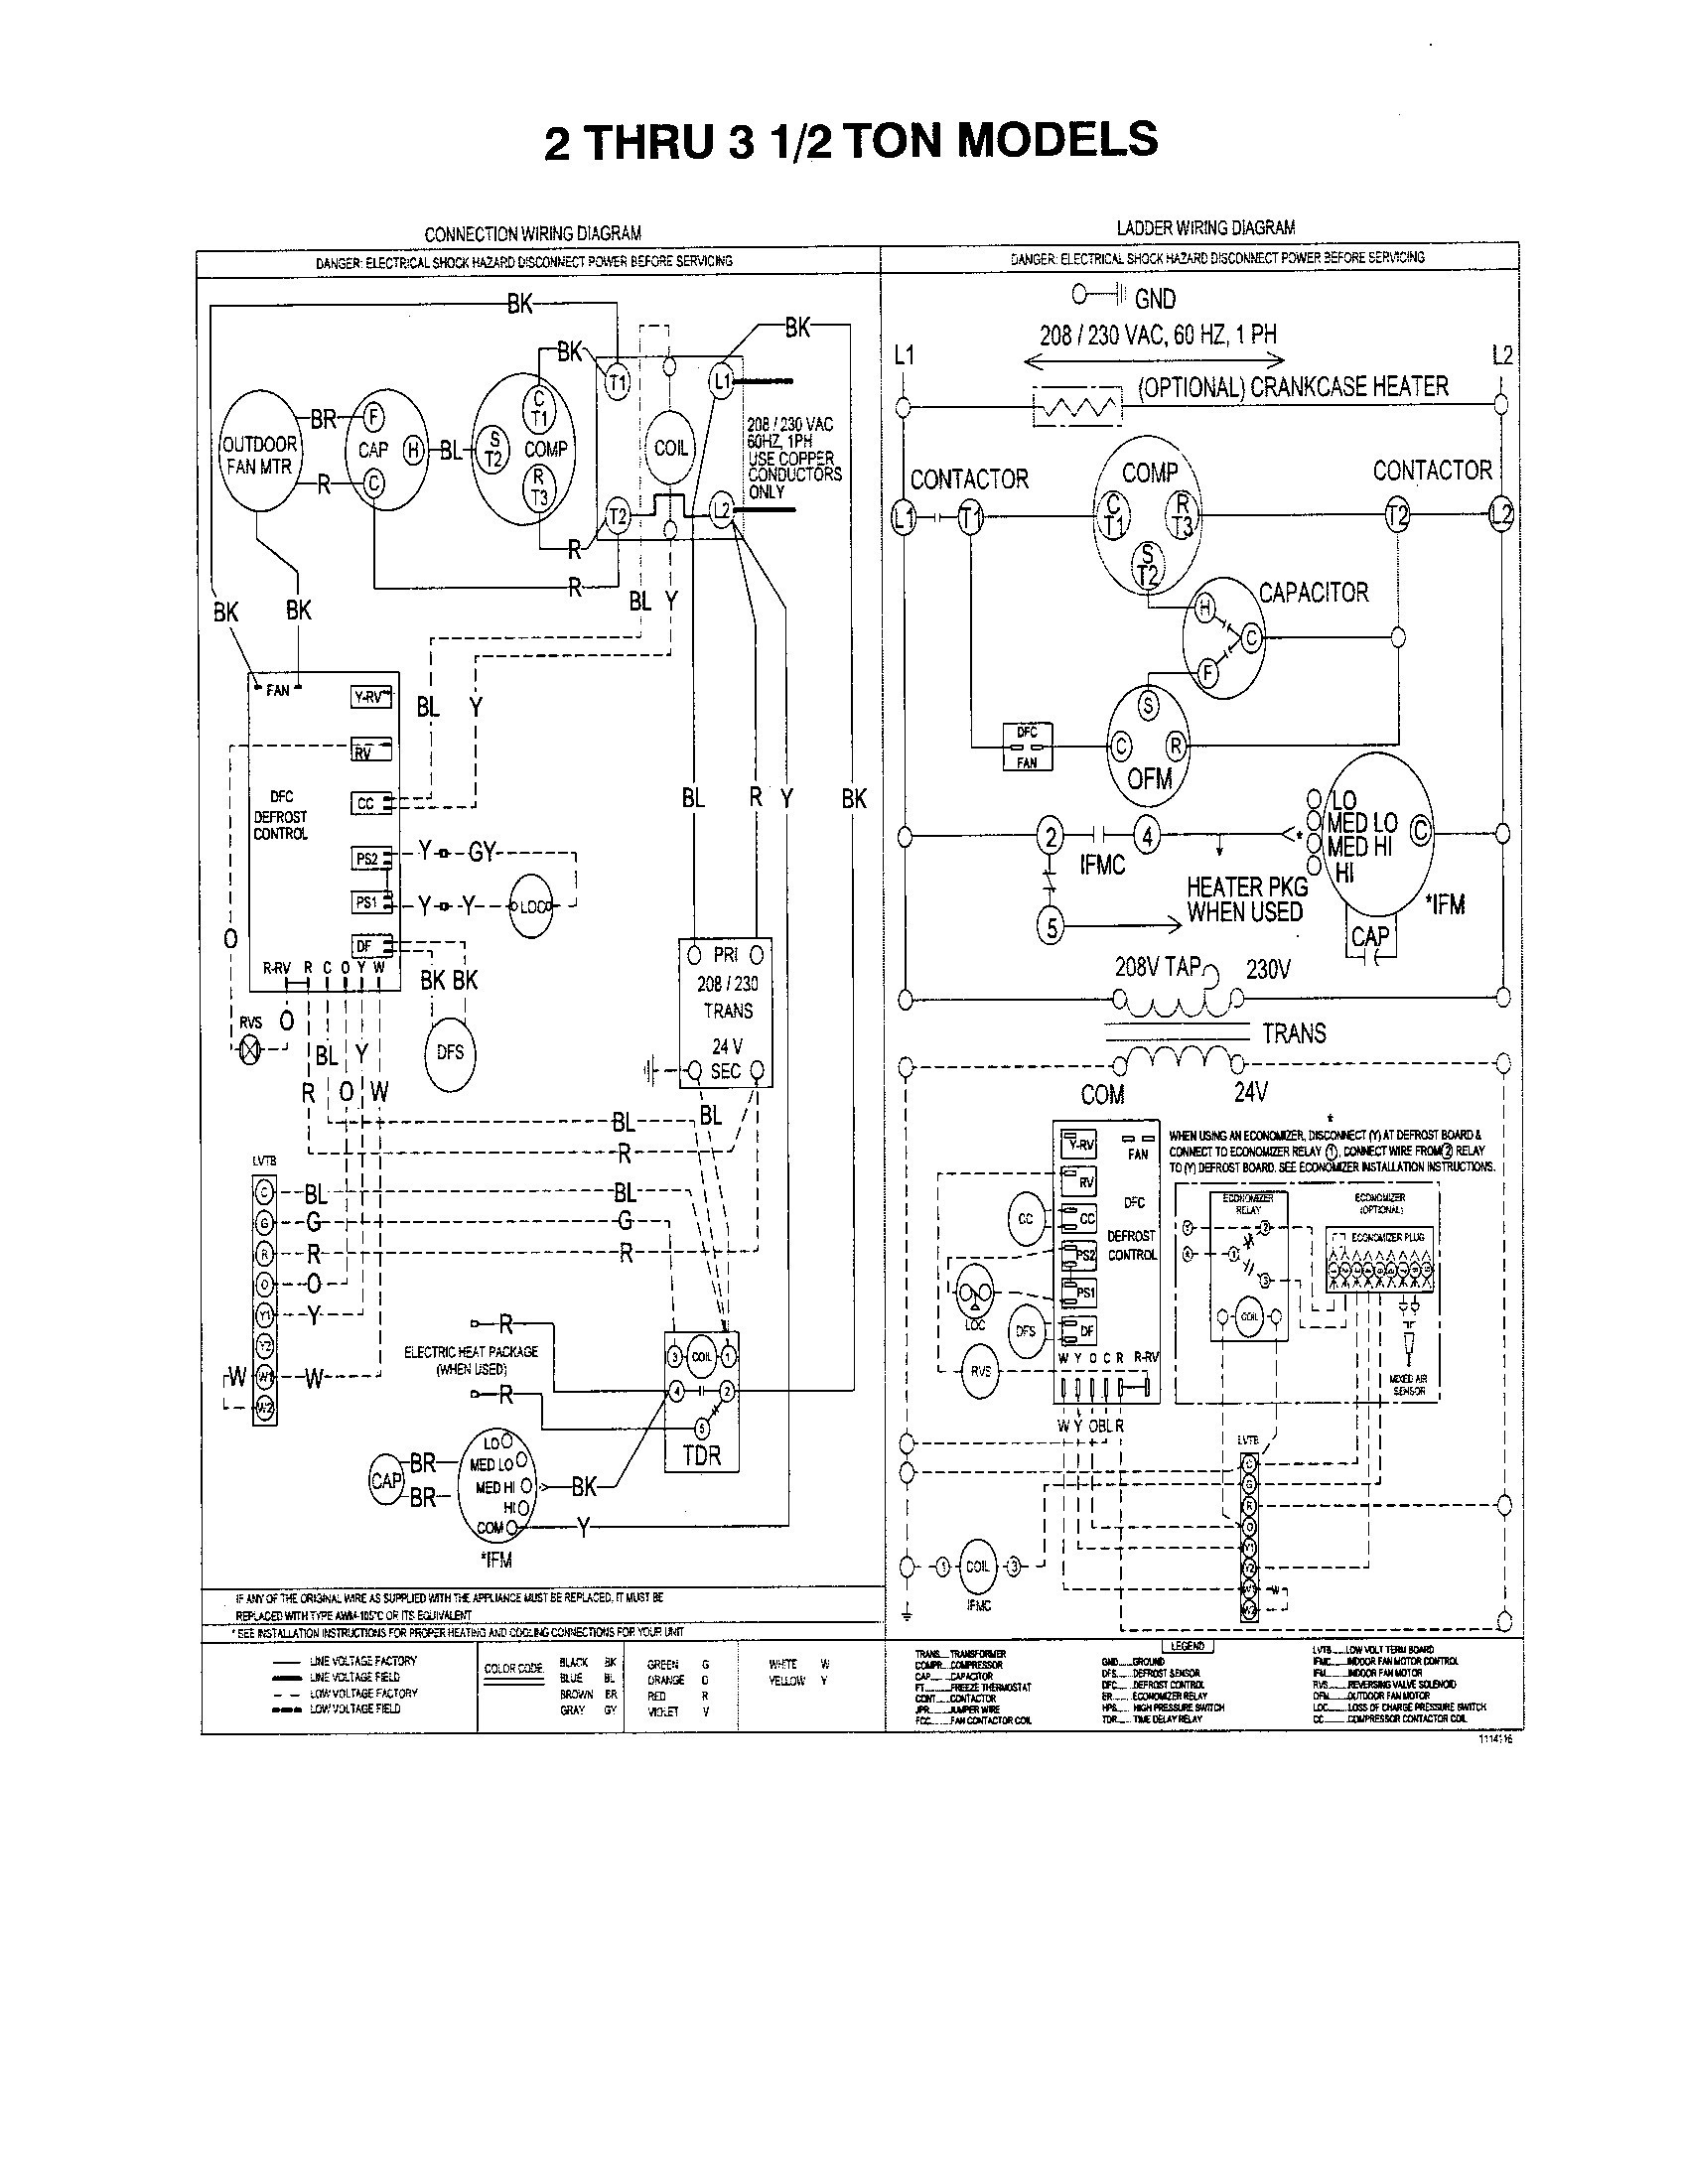 Wiring Diagram Split System Heat Pump Schematics Diagrams Goodman Contactor York Ac Schemes U2022 Rh Jarsamsterdam Com Thermostat